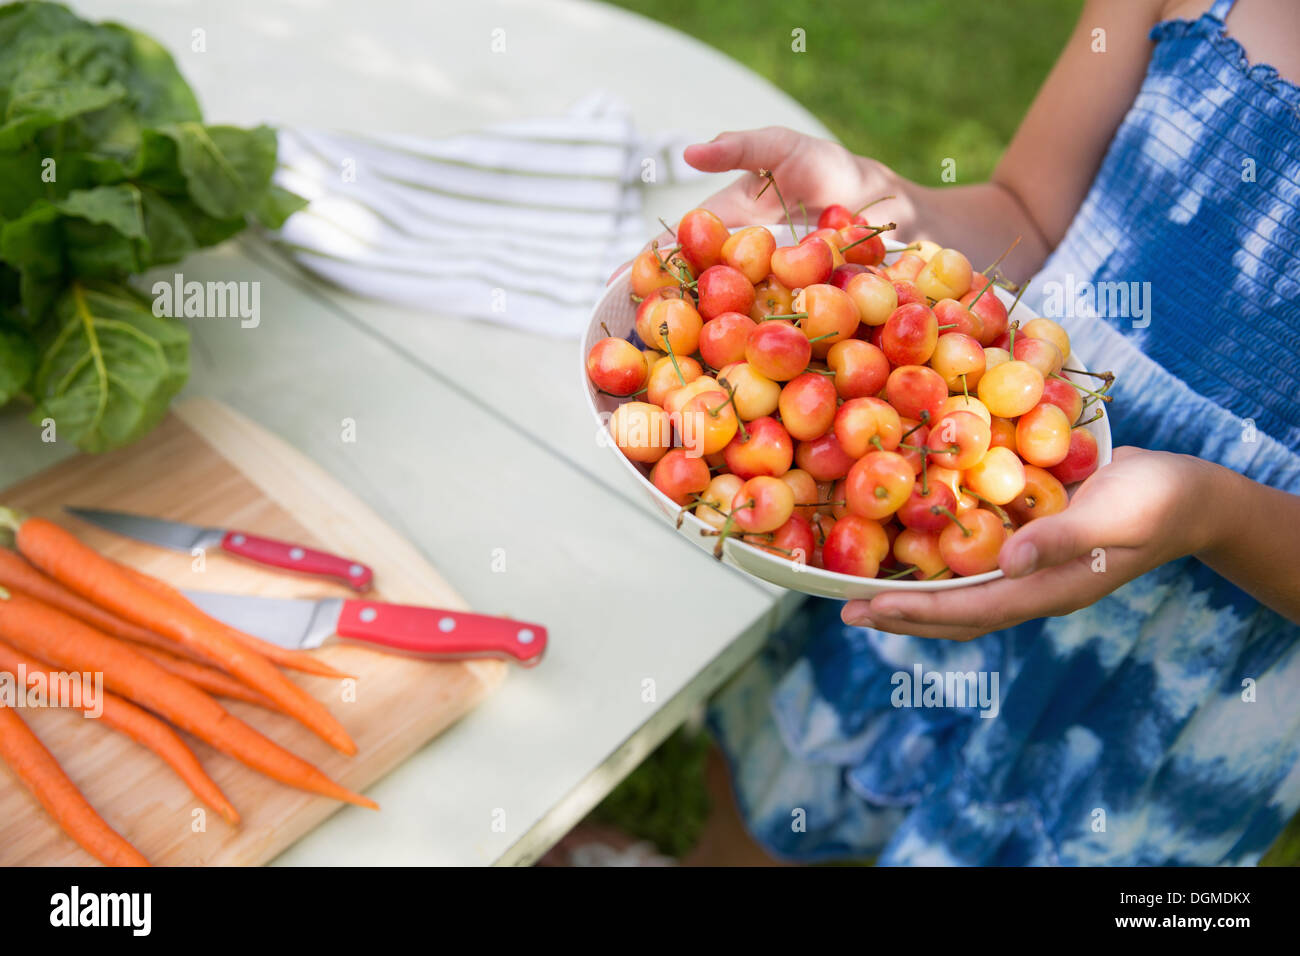 Family party. A child carrying a bowl of fresh picked cherries to a buffet table. Stock Photo